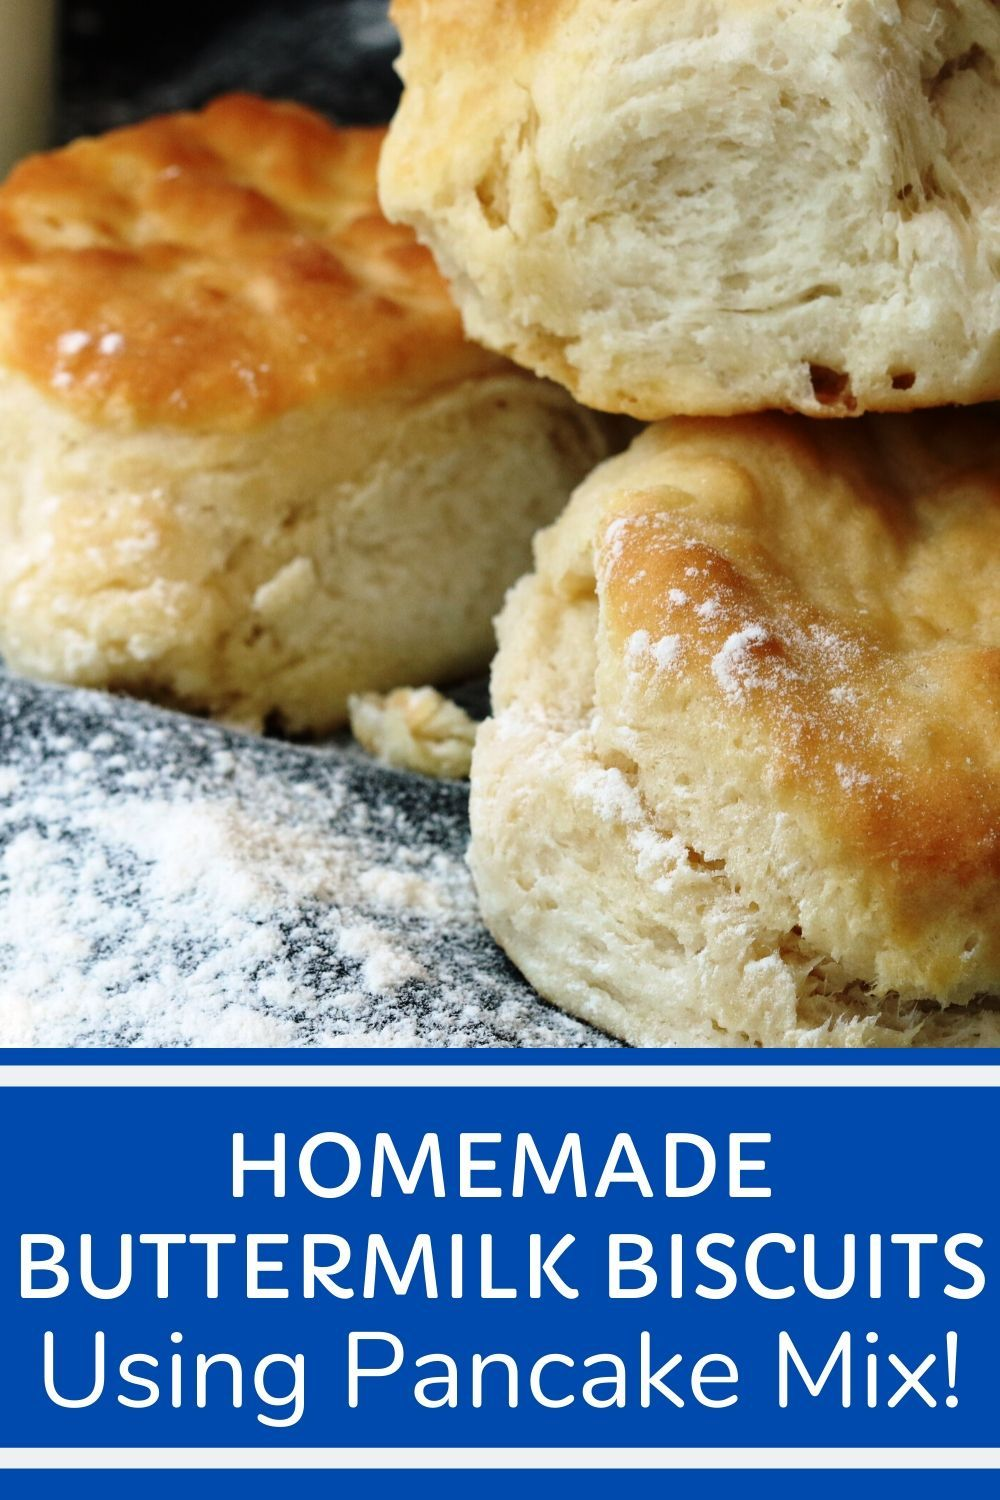 Homemade Buttermilk Biscuits Made With Pancake Mix Versatile Homemade Buttermilk Biscuits Recipe Made With Just 2 Ingredients And Done In